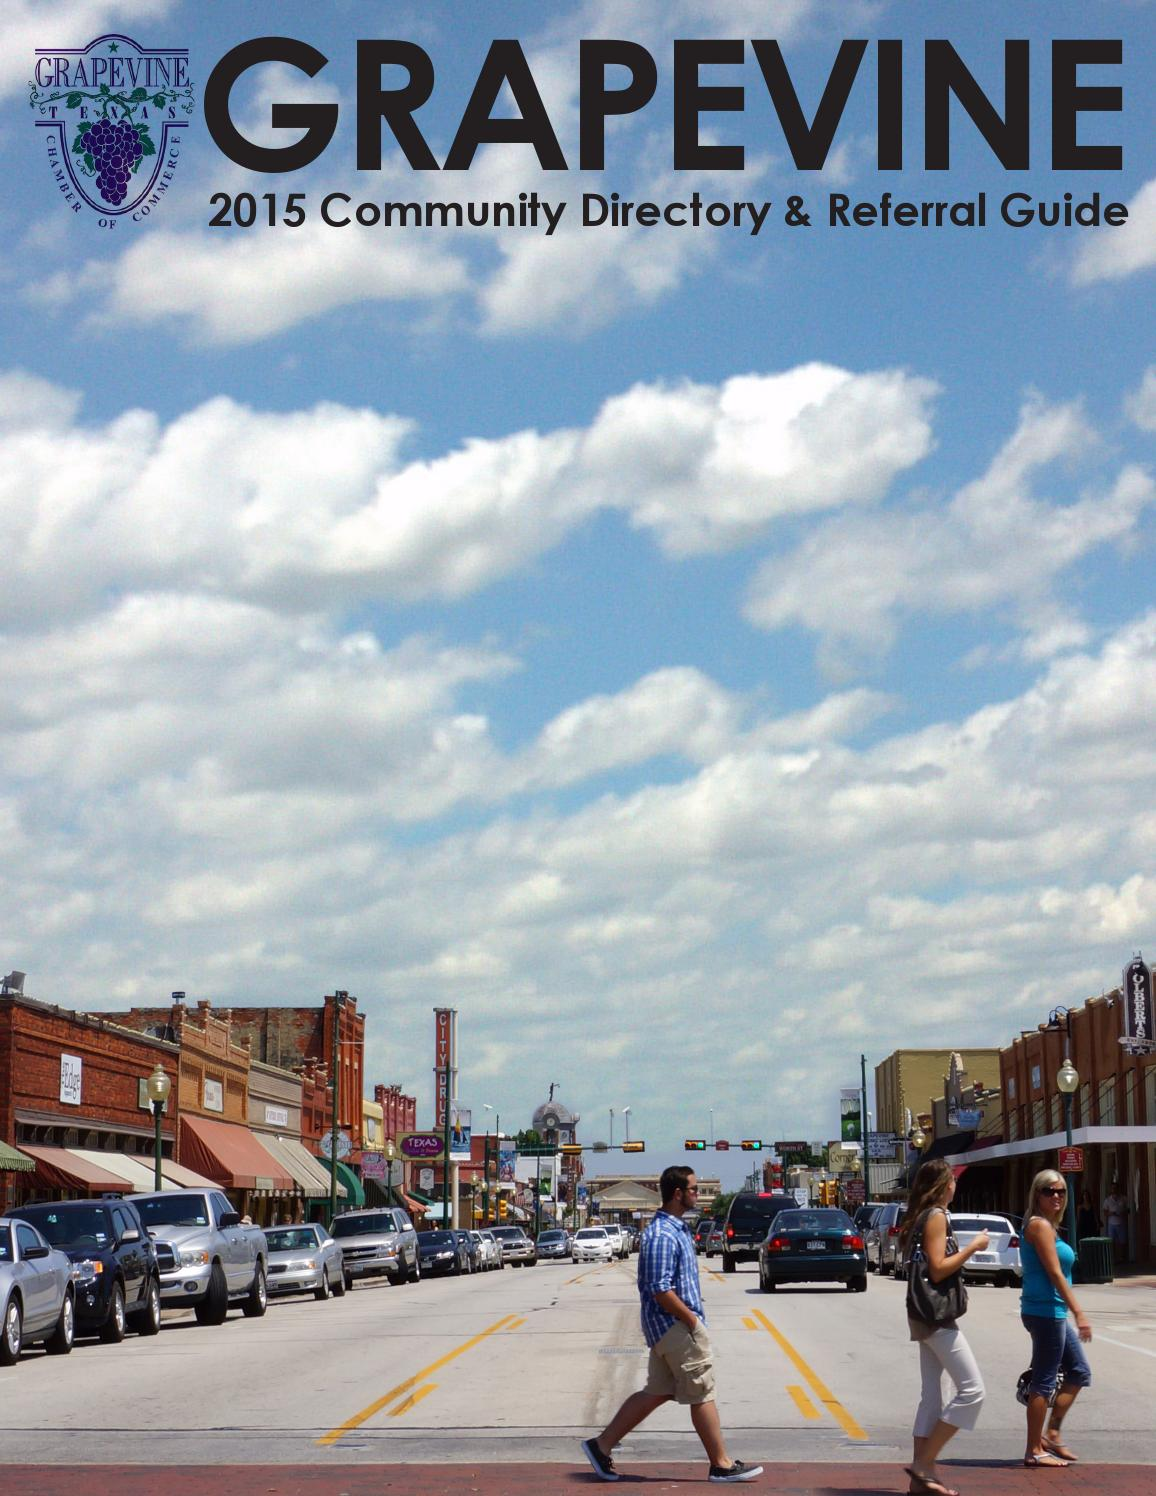 grapevine chamber of commerce 2015 community directory